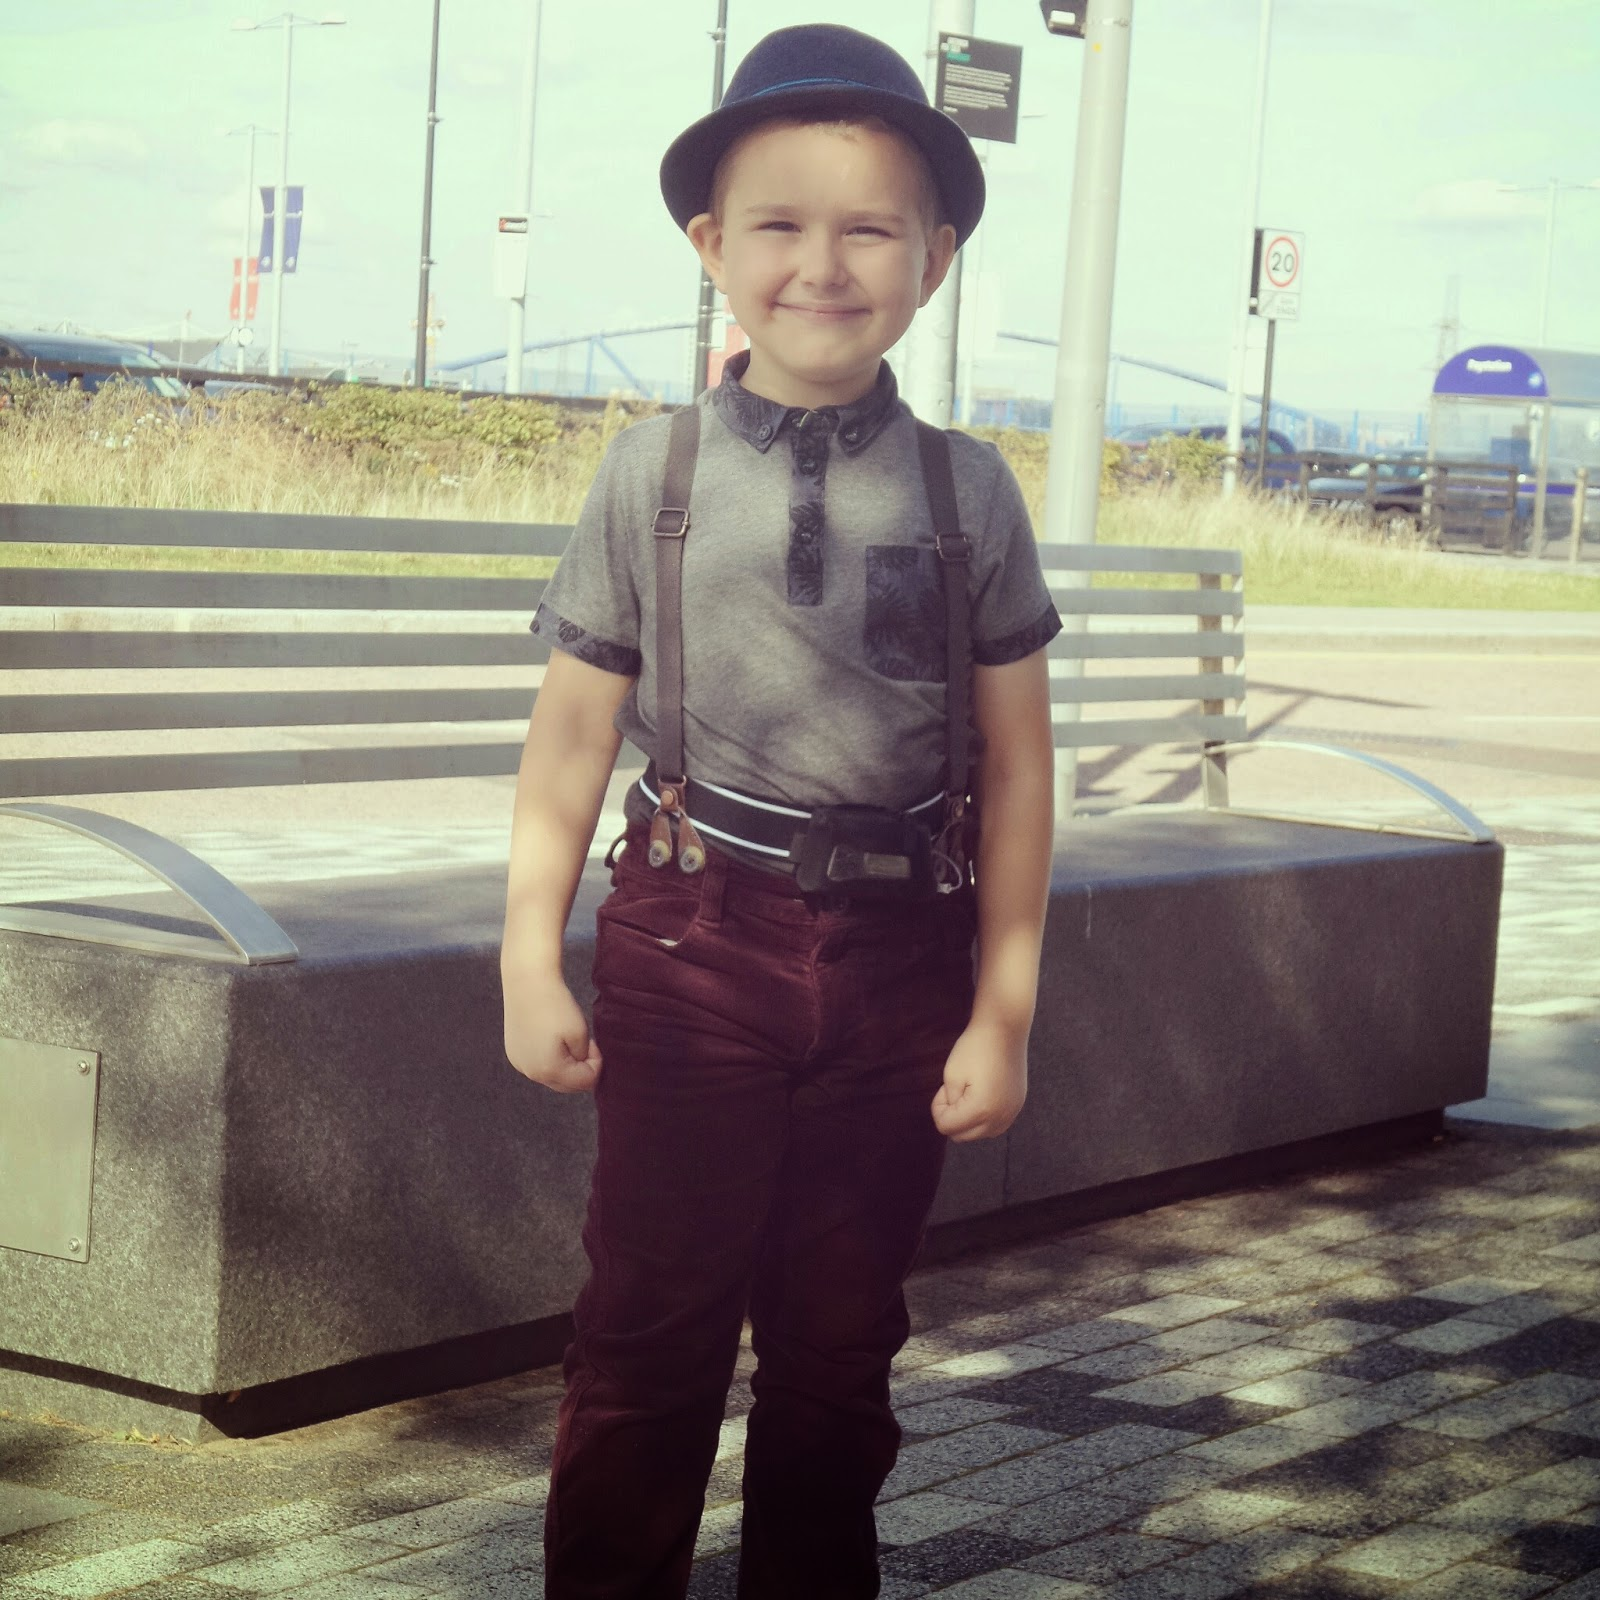 Big Boy decided what he wanted to wear - Do you think he looks like Olly Murs or Doctor Who?